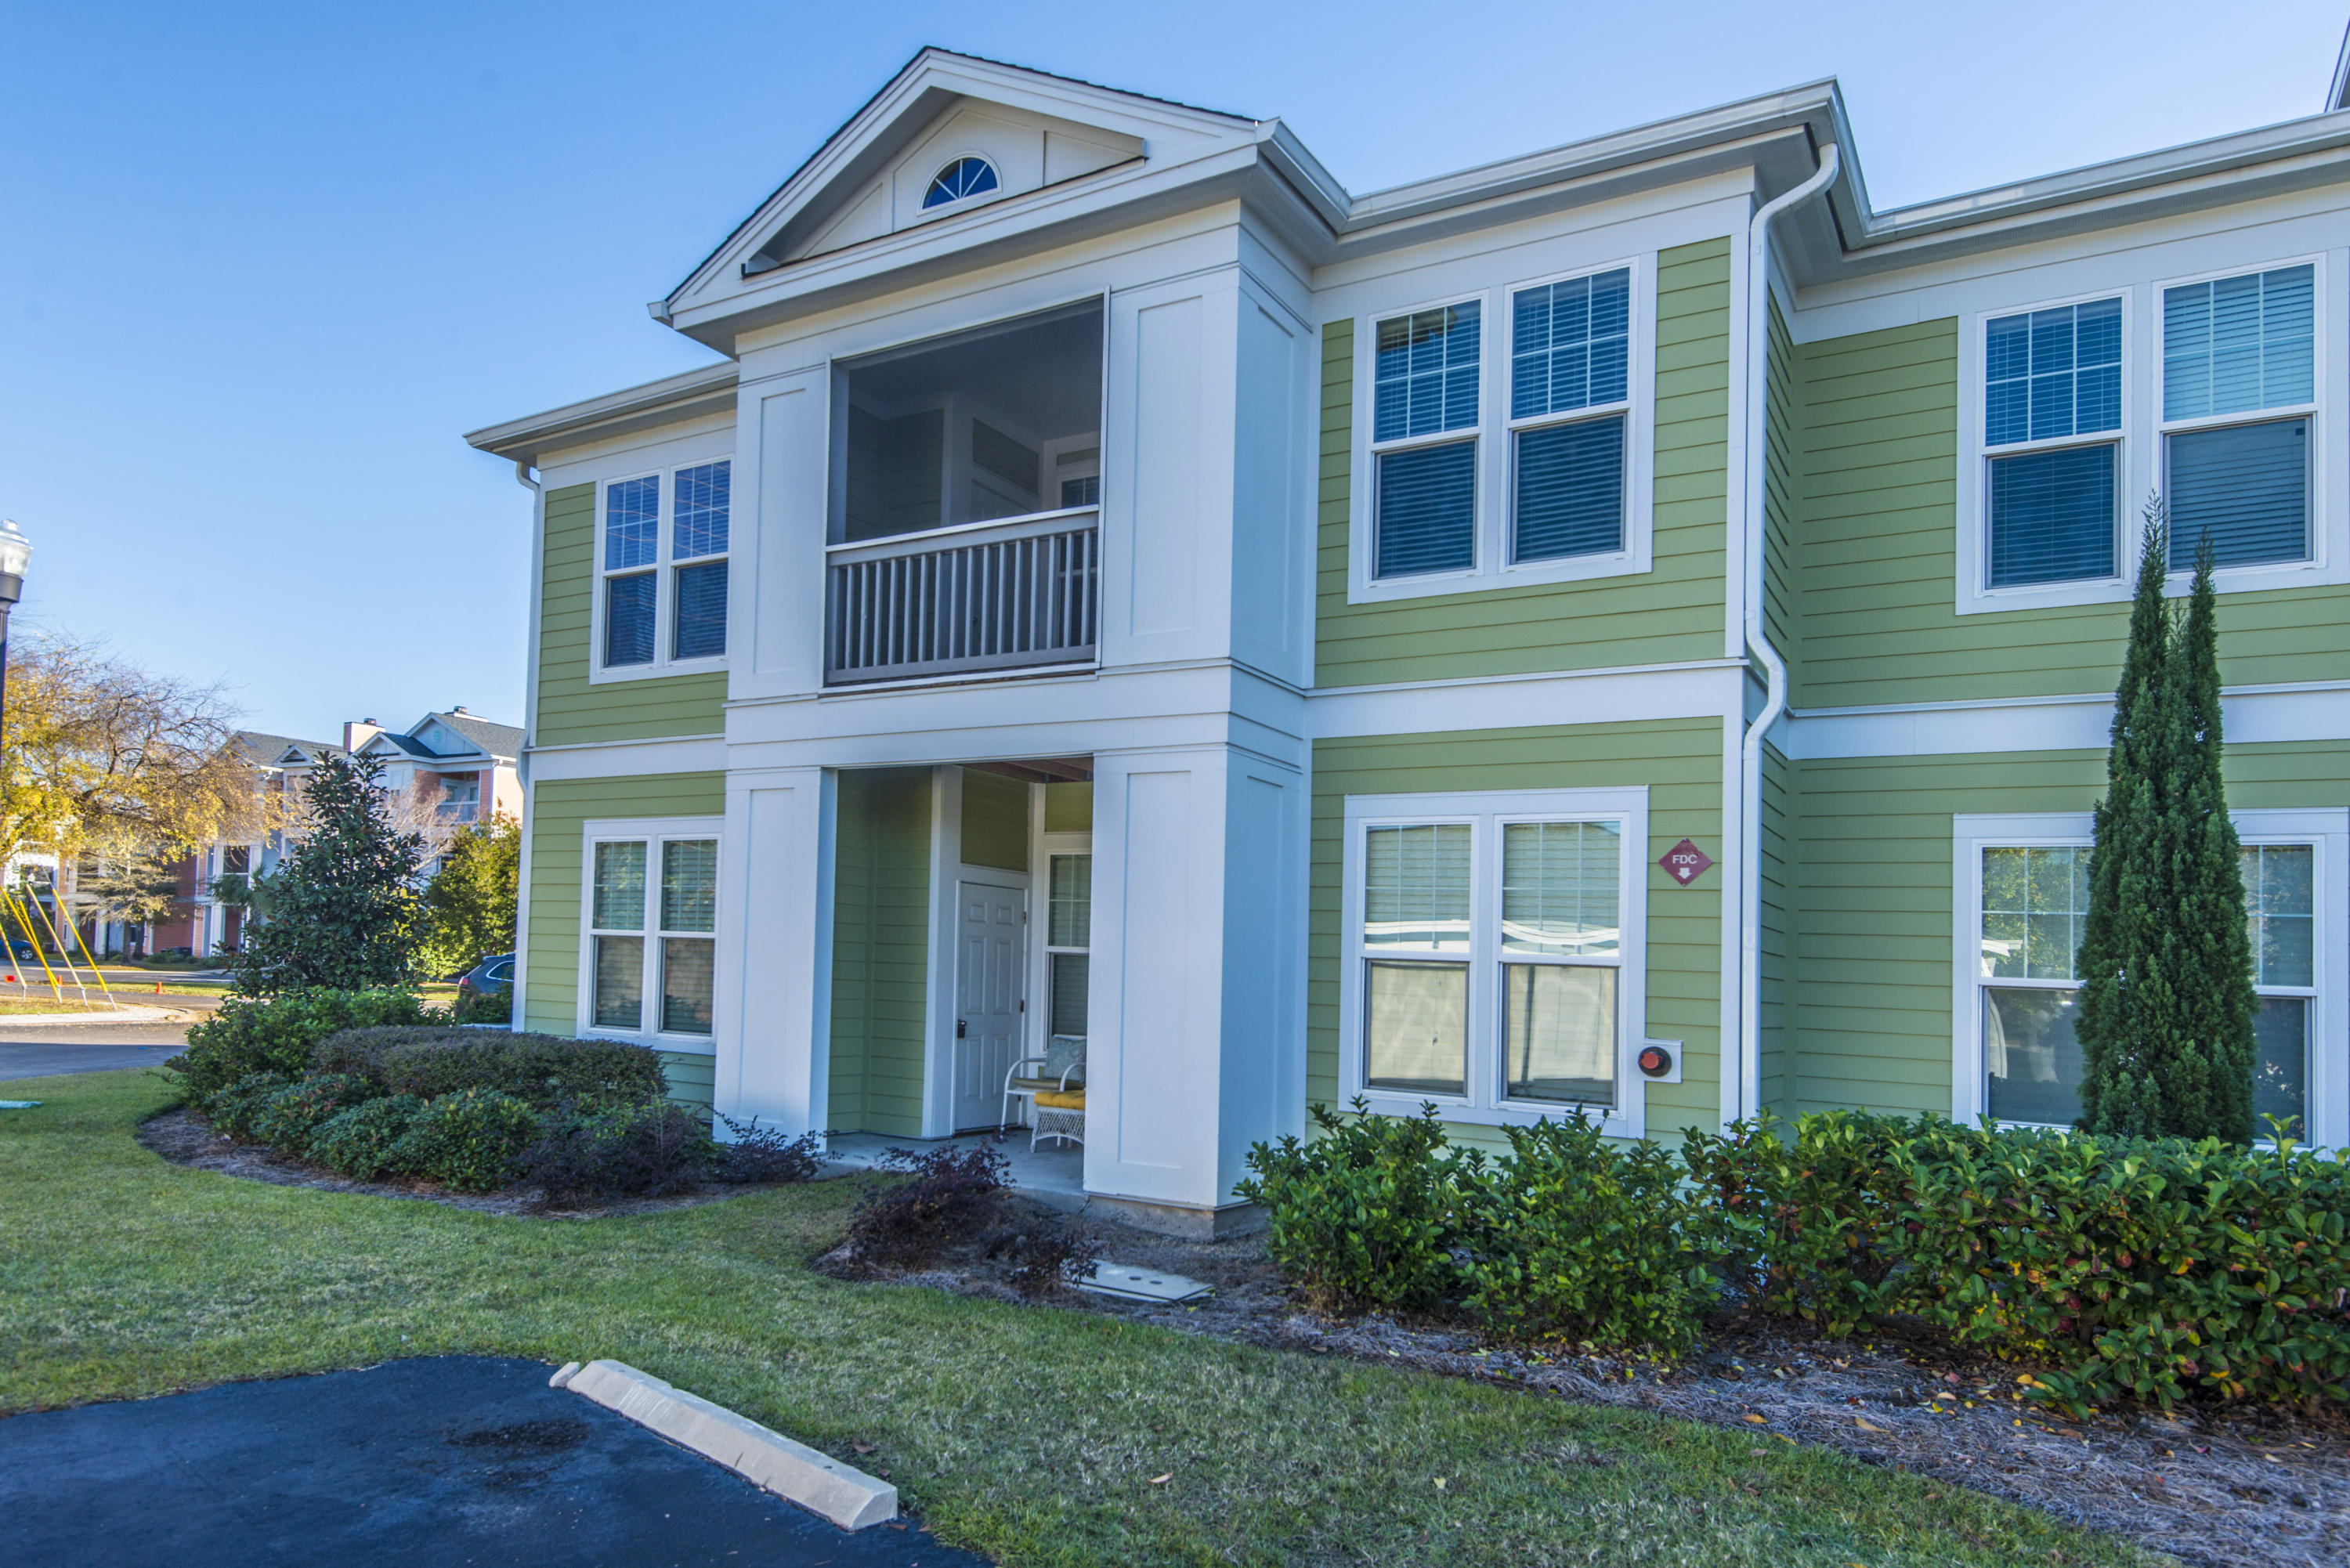 Southampton Pointe Homes For Sale - 1515 Rosewood, Mount Pleasant, SC - 3